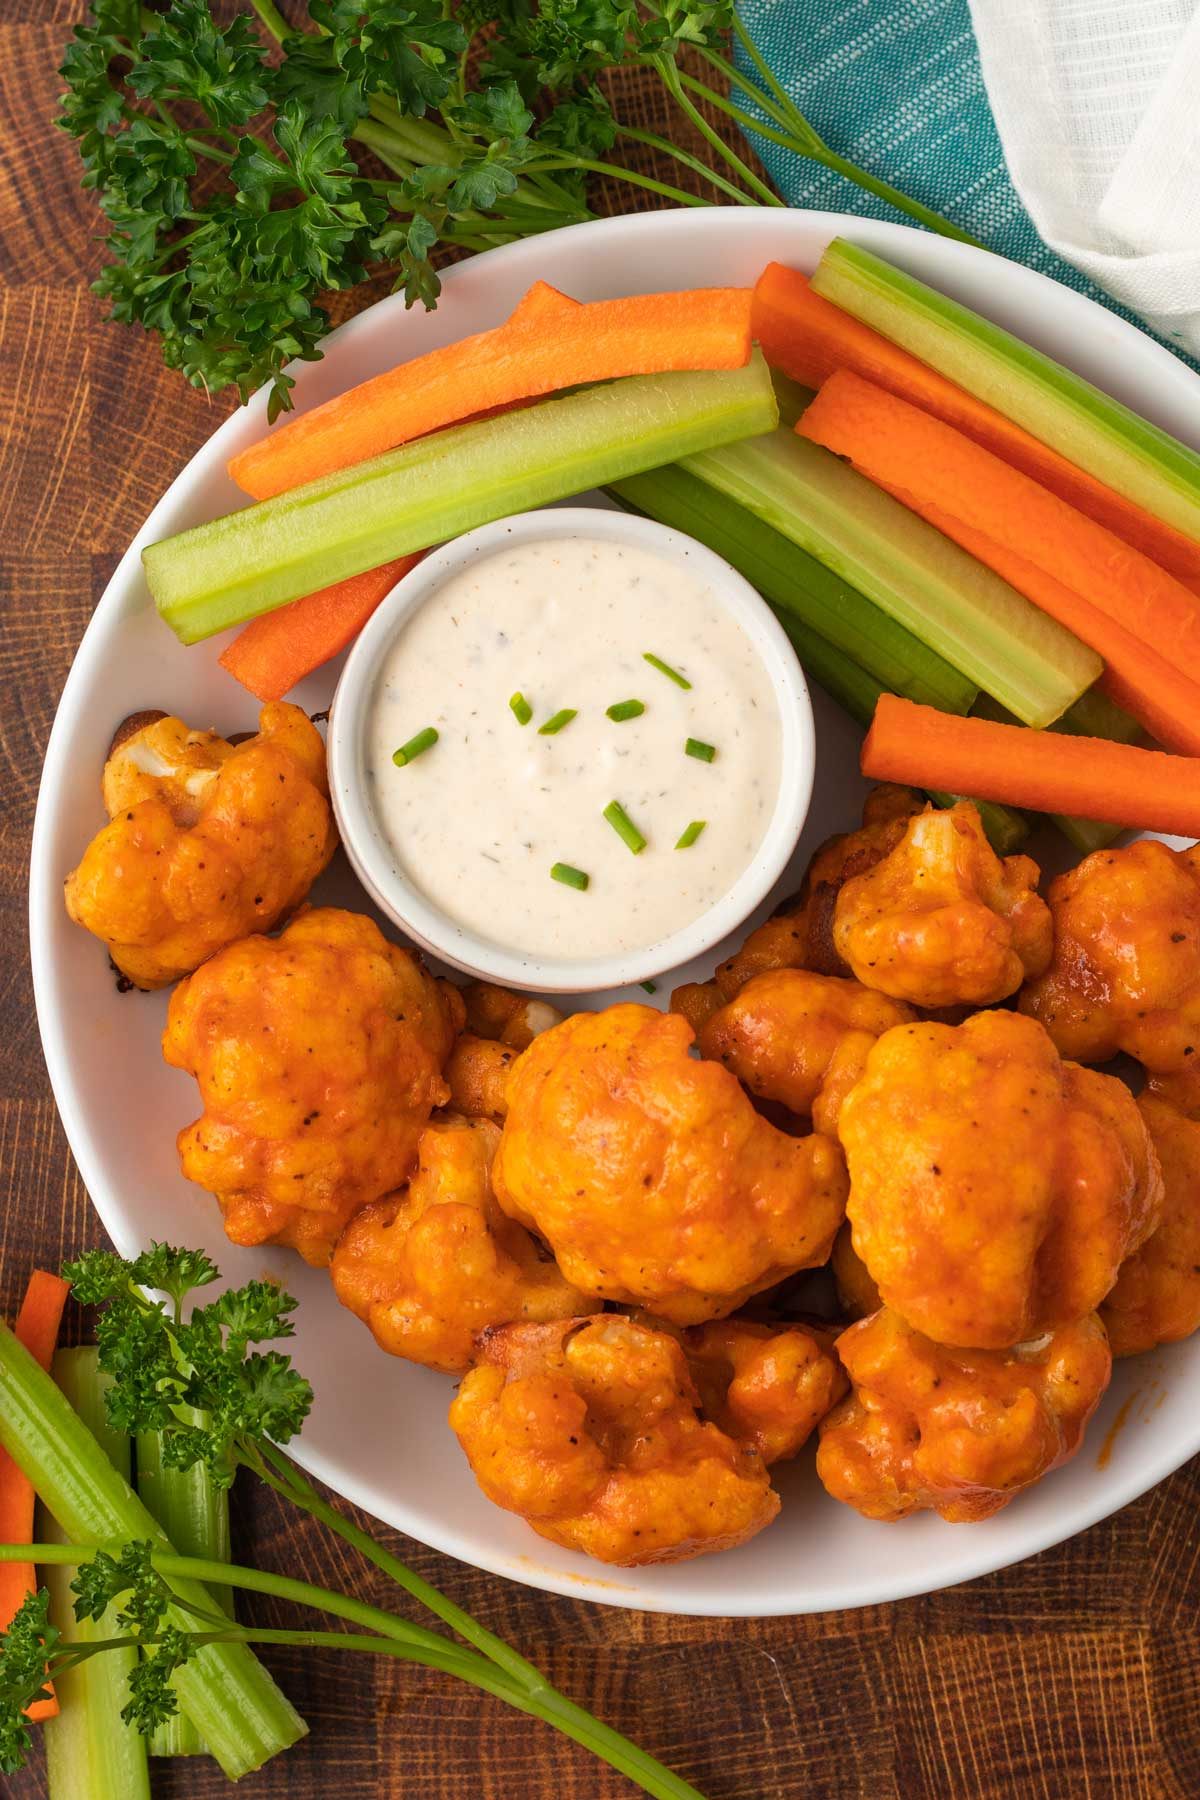 A plate filled with buffalo cauliflower wings, celery, carrots, and a dish of vegan ranch.